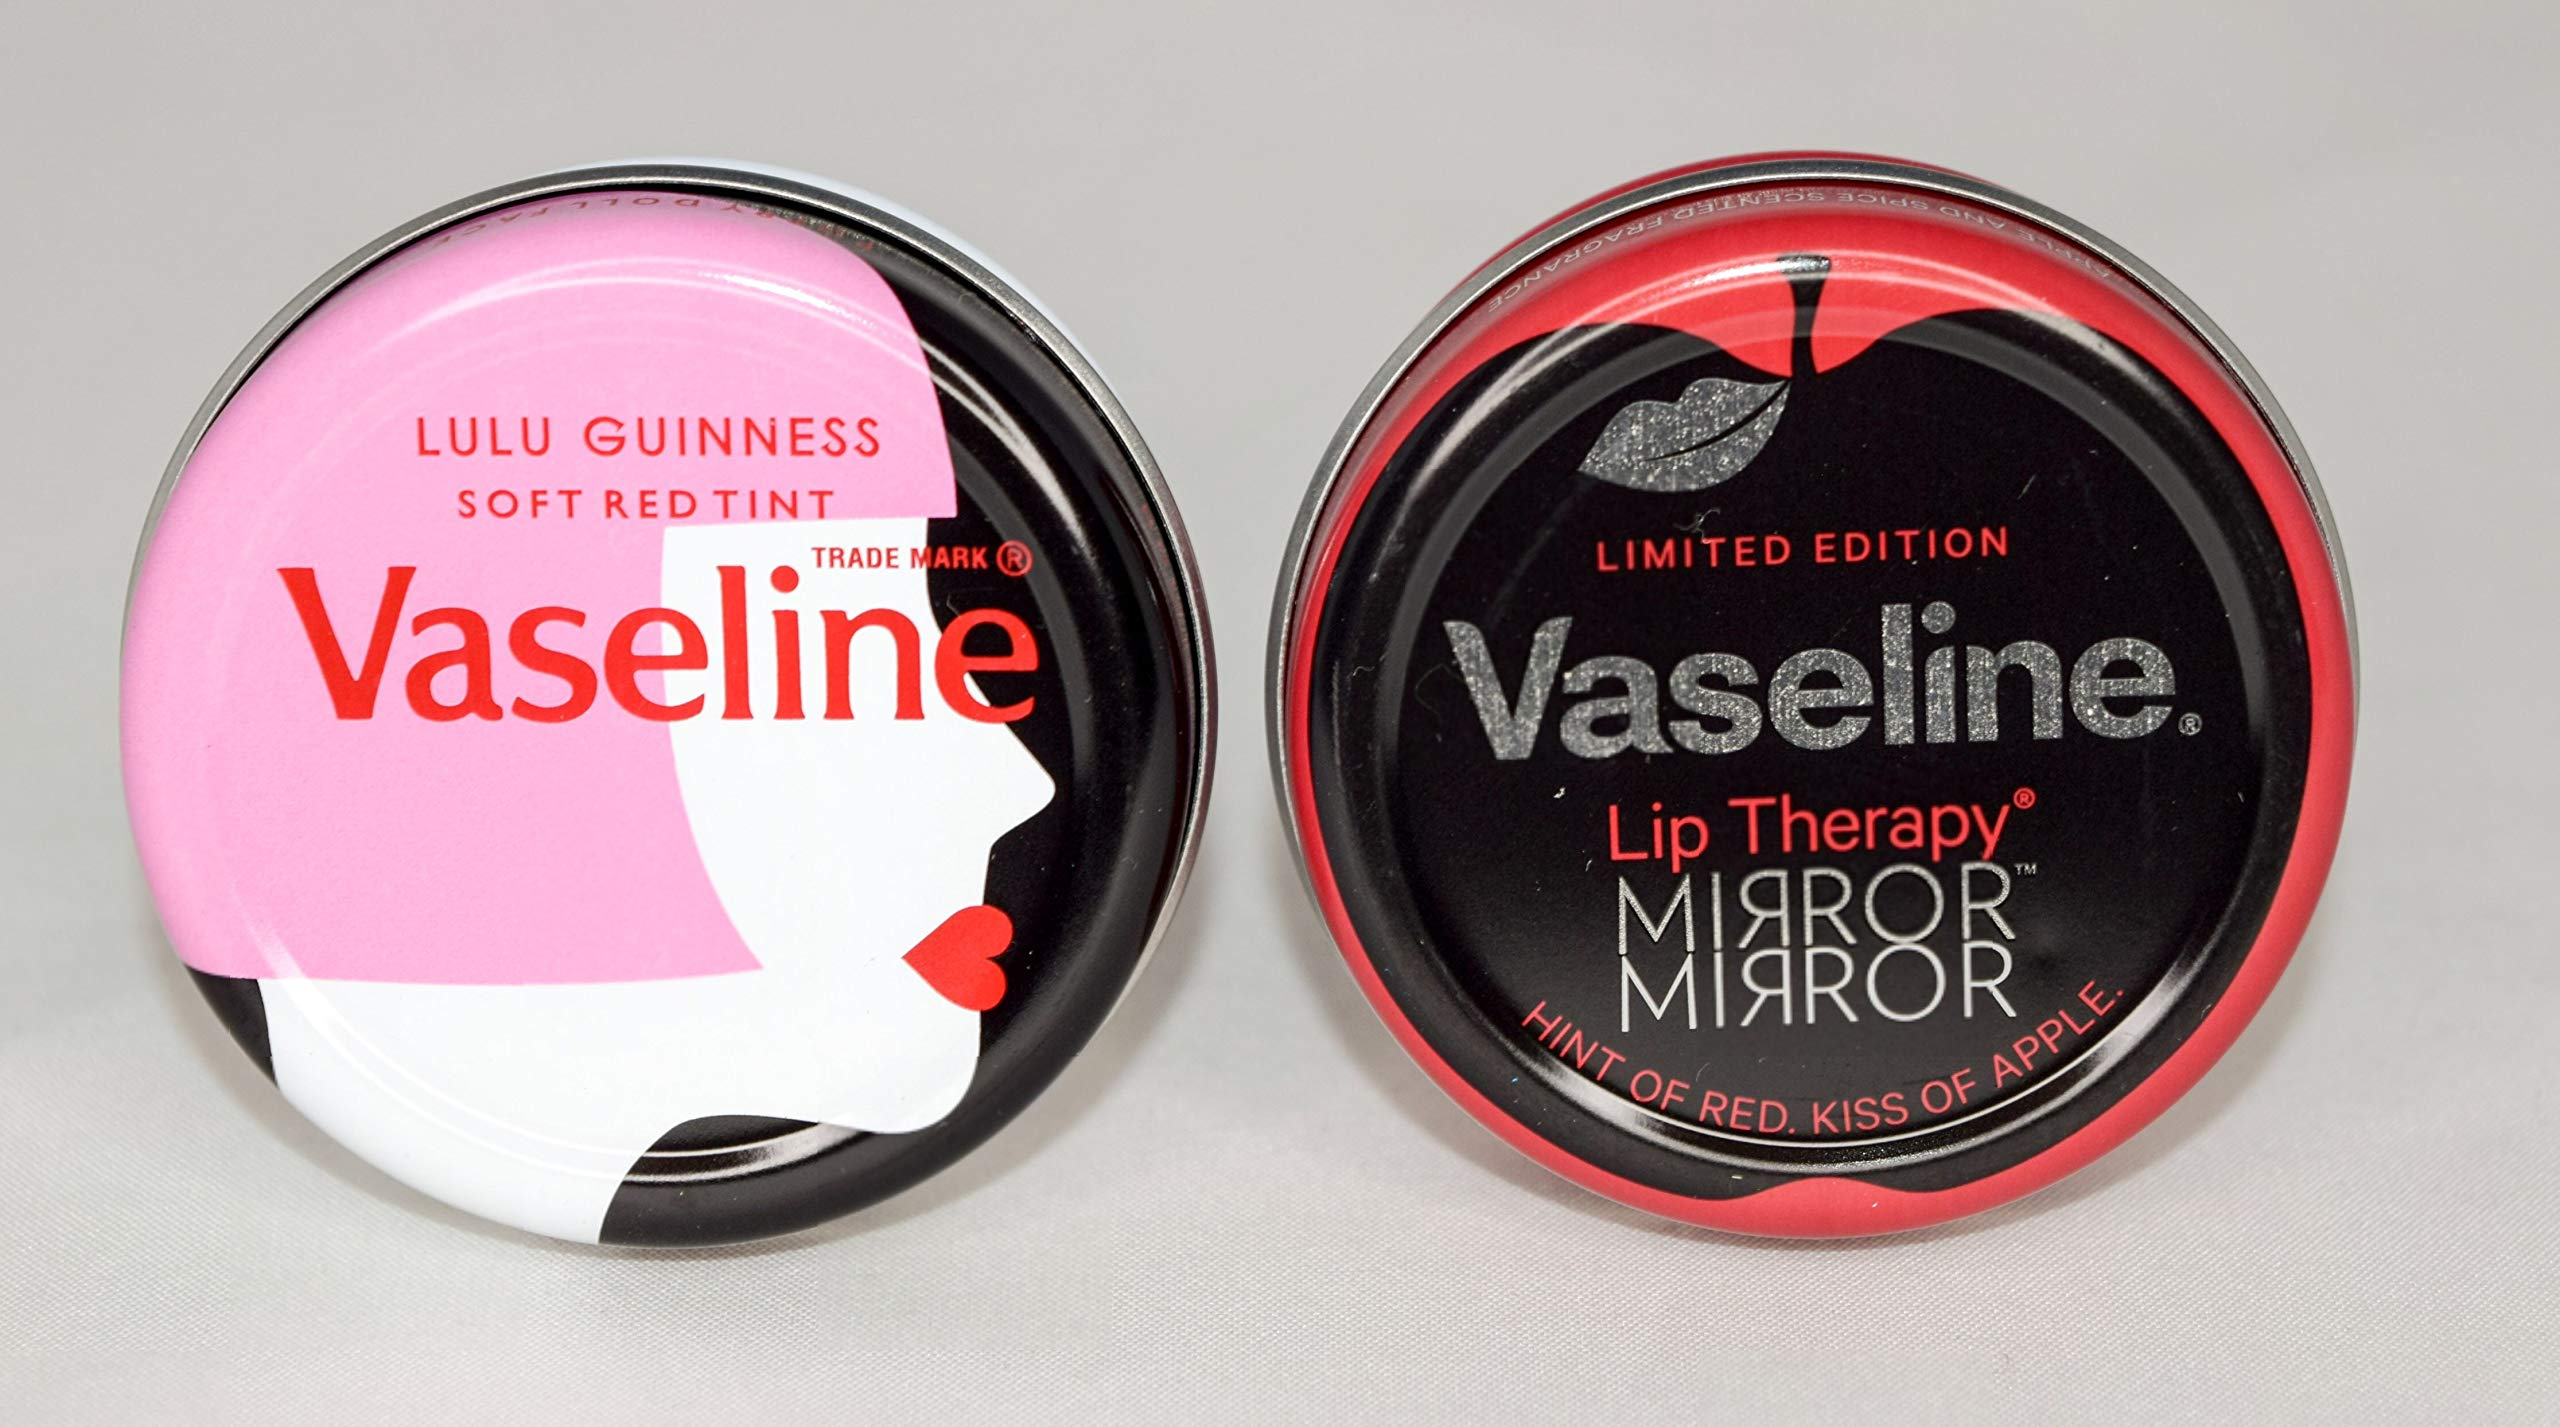 Vaseline Lip Therapy Mix Limited Edition Lulu Guinness +Mirror Mirror 20Gm (Mix Vaseline Limited Edition Lip Therapy Lulu Guinness +Mirror Mirror, 6X20Gm) by Limited Edition Lip Therapy Lulu Guinness +Mirror Mirror